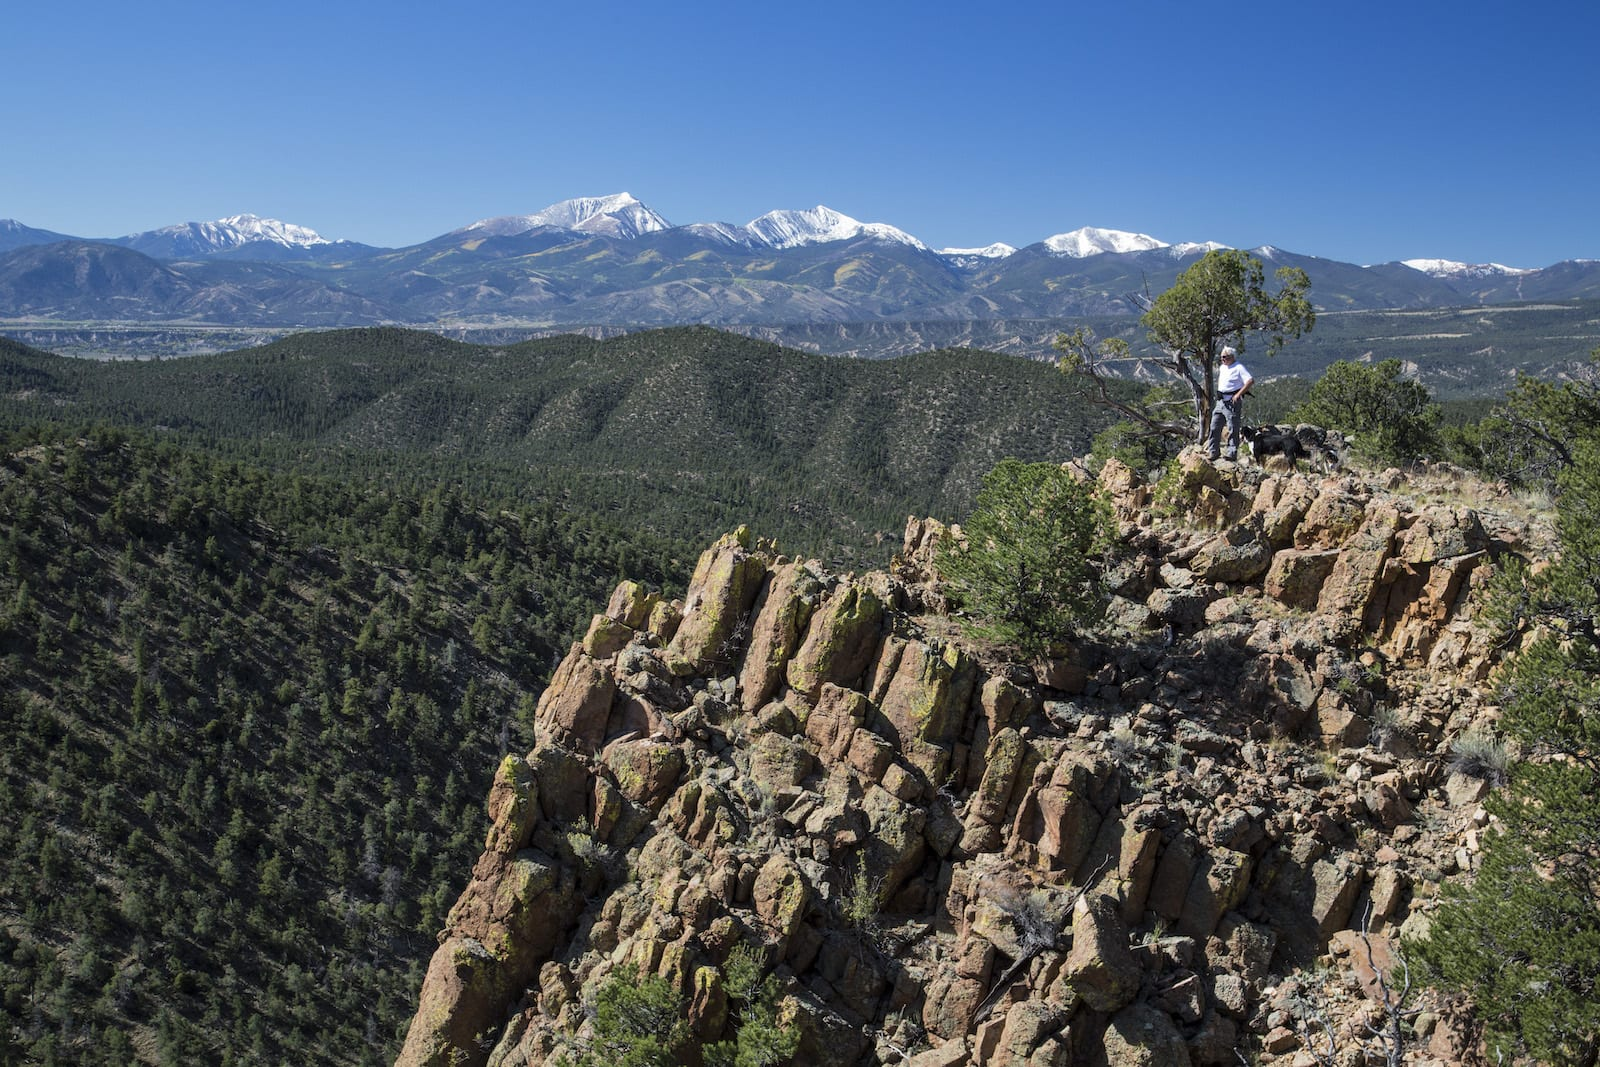 Man Stands on Cliff in Browns Canyon National Monument Salida CO